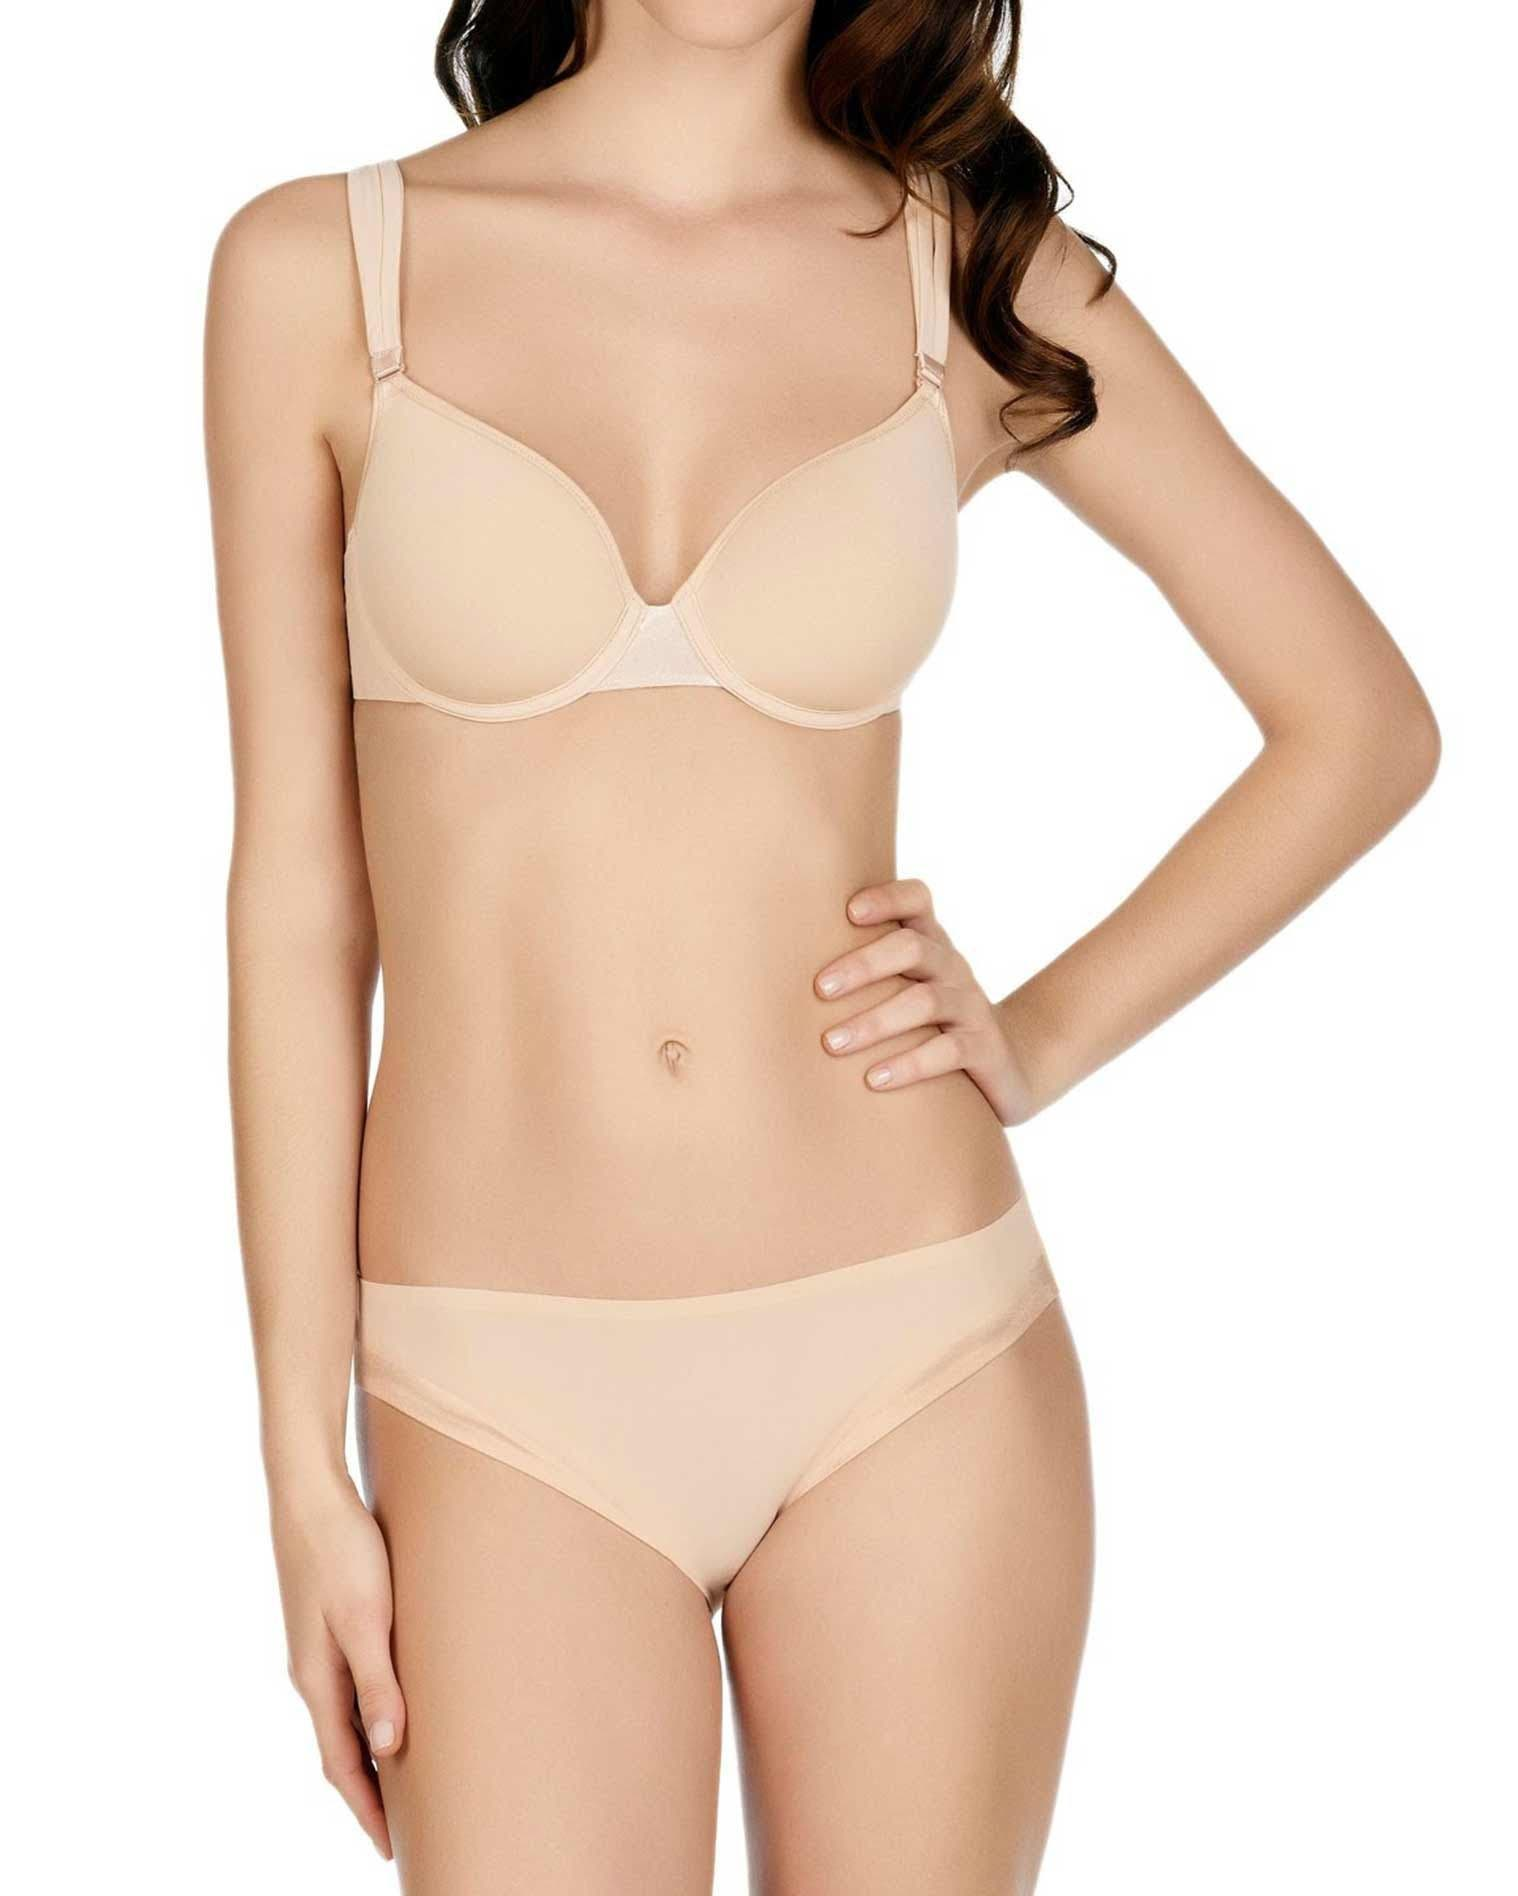 3D spacer plunge bra - Nude